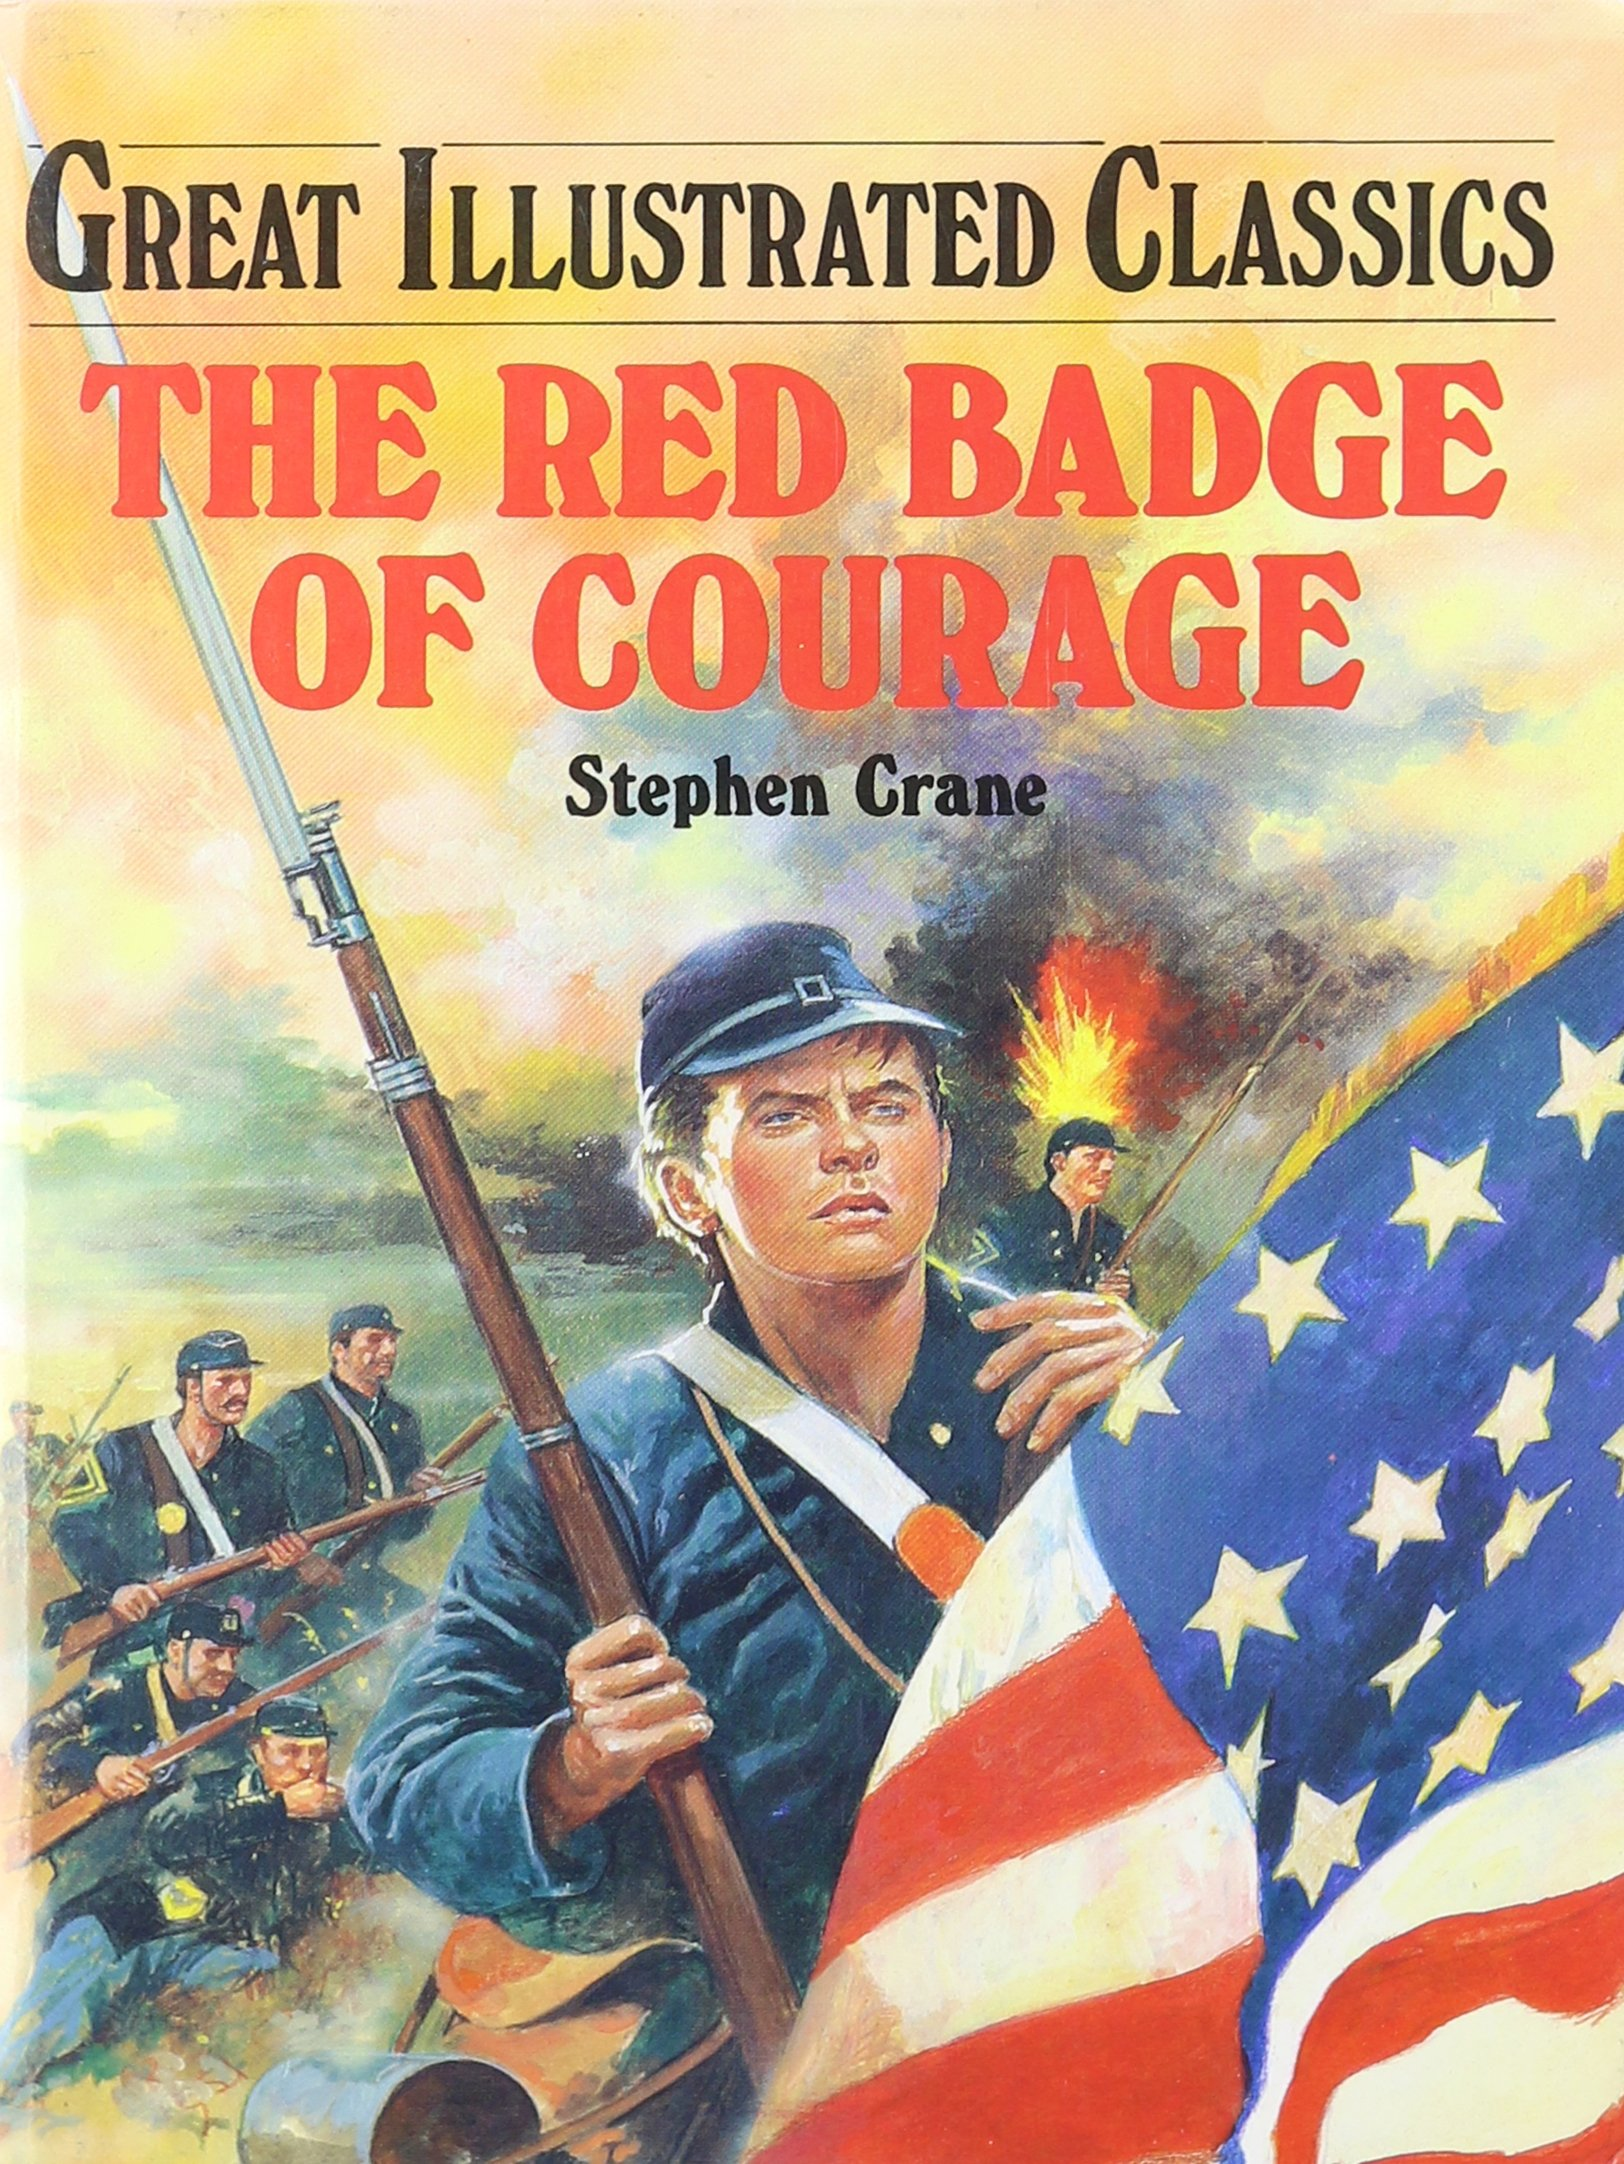 THE RED BADGE OF COURAGE EPUB DOWNLOAD